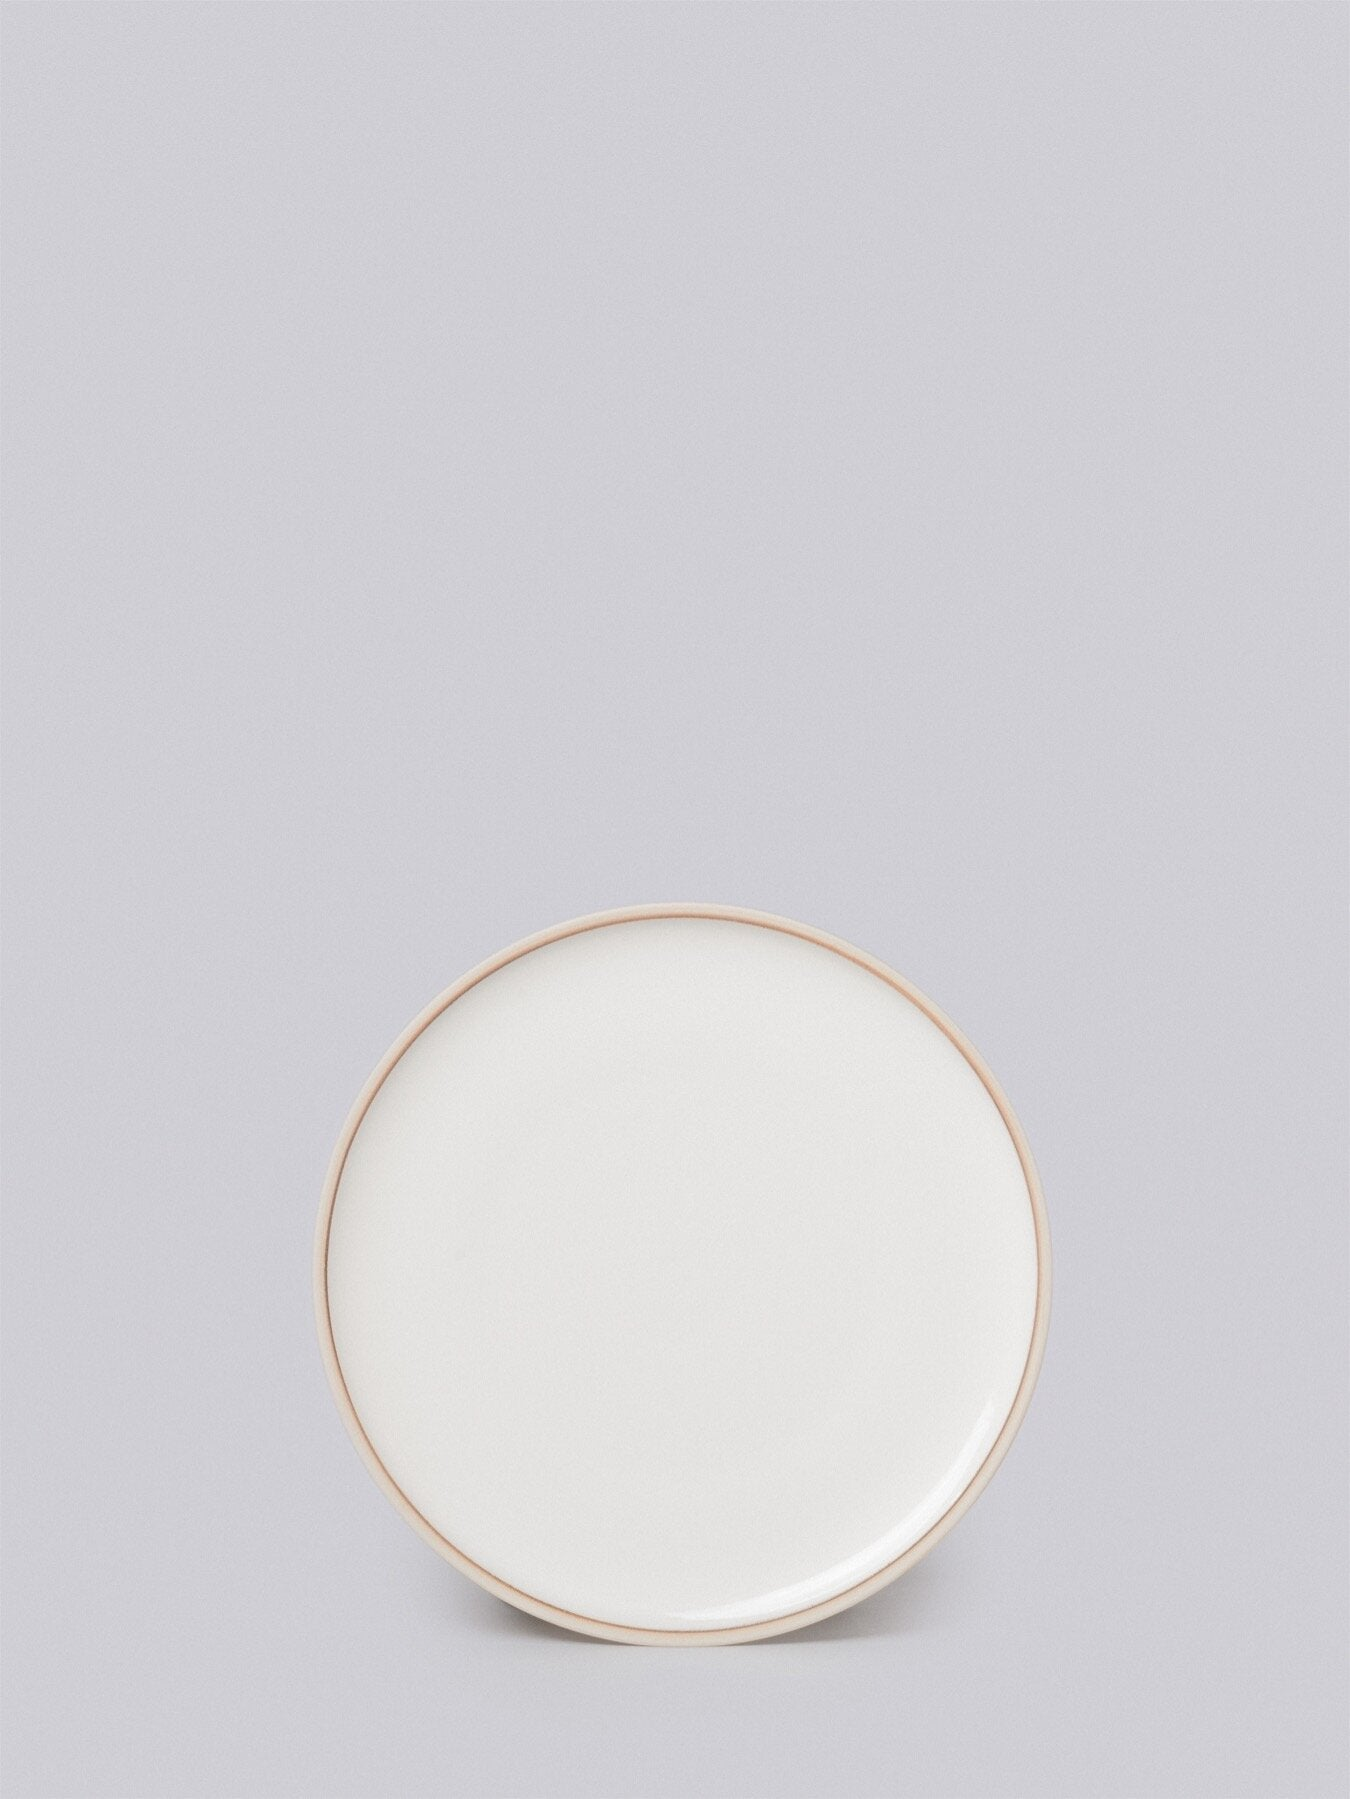 Middle Kingdom Hermit Porcelain Plate - Ivory Kitchen and Dining Middle Kingdom